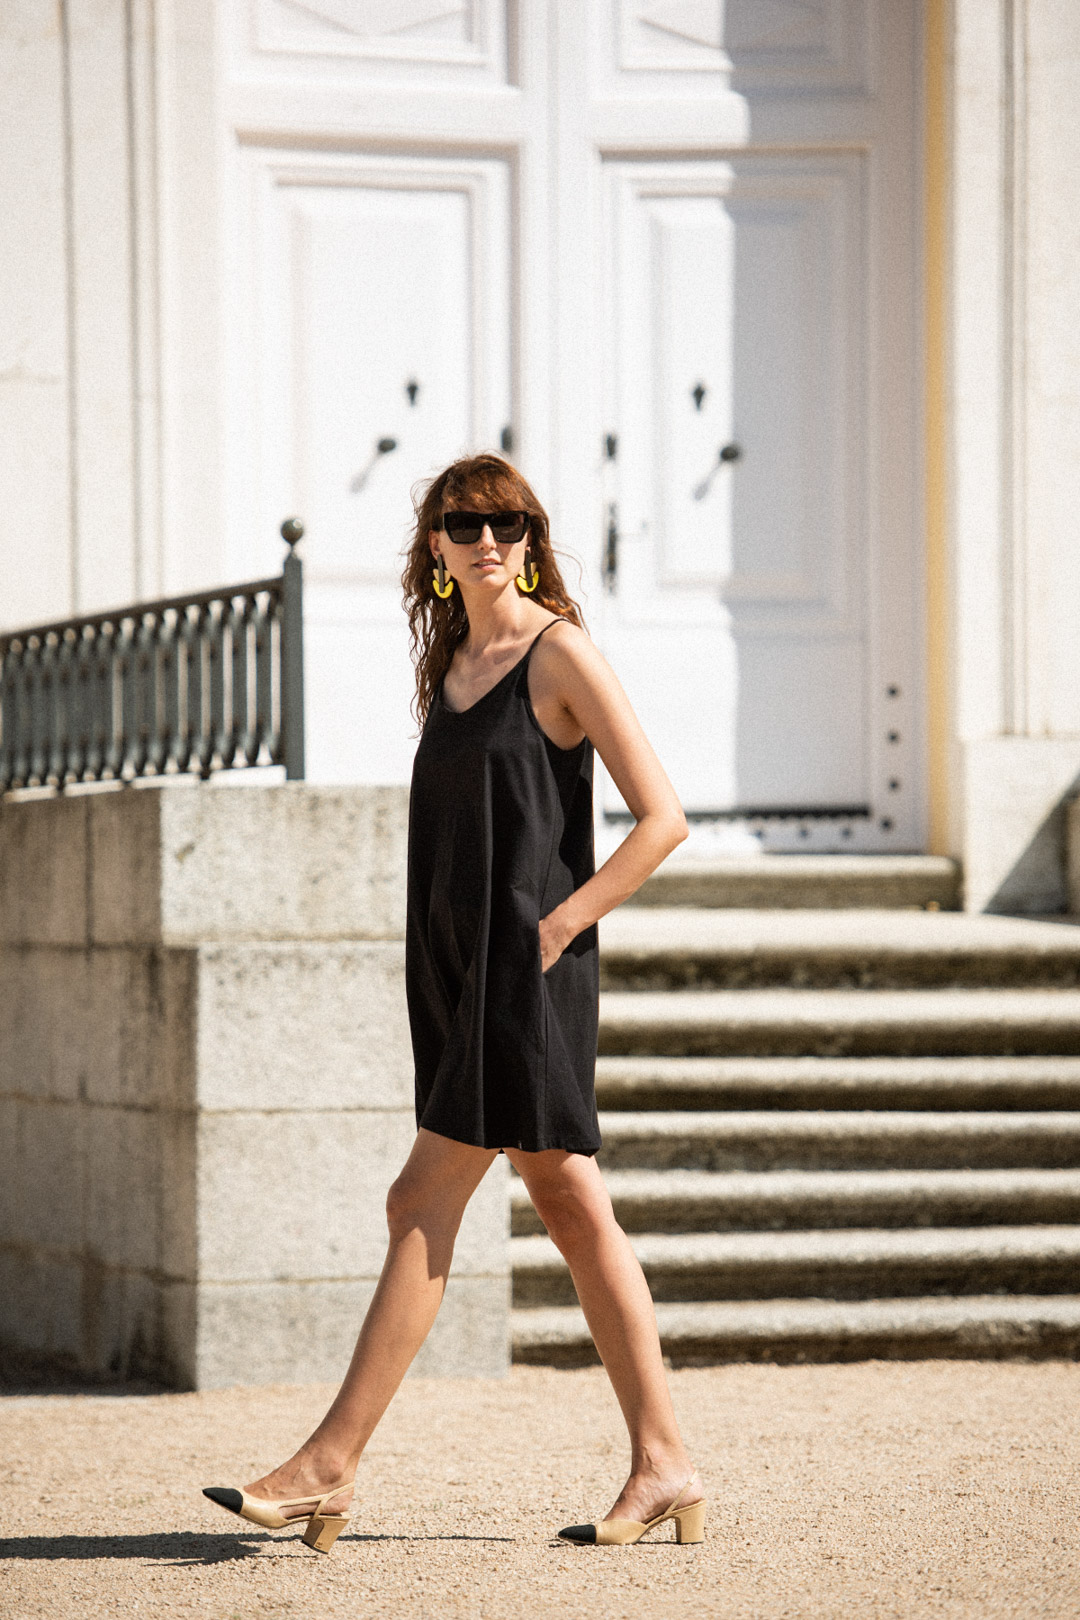 black-dress-summer-mayte-de-la-iglesia-4